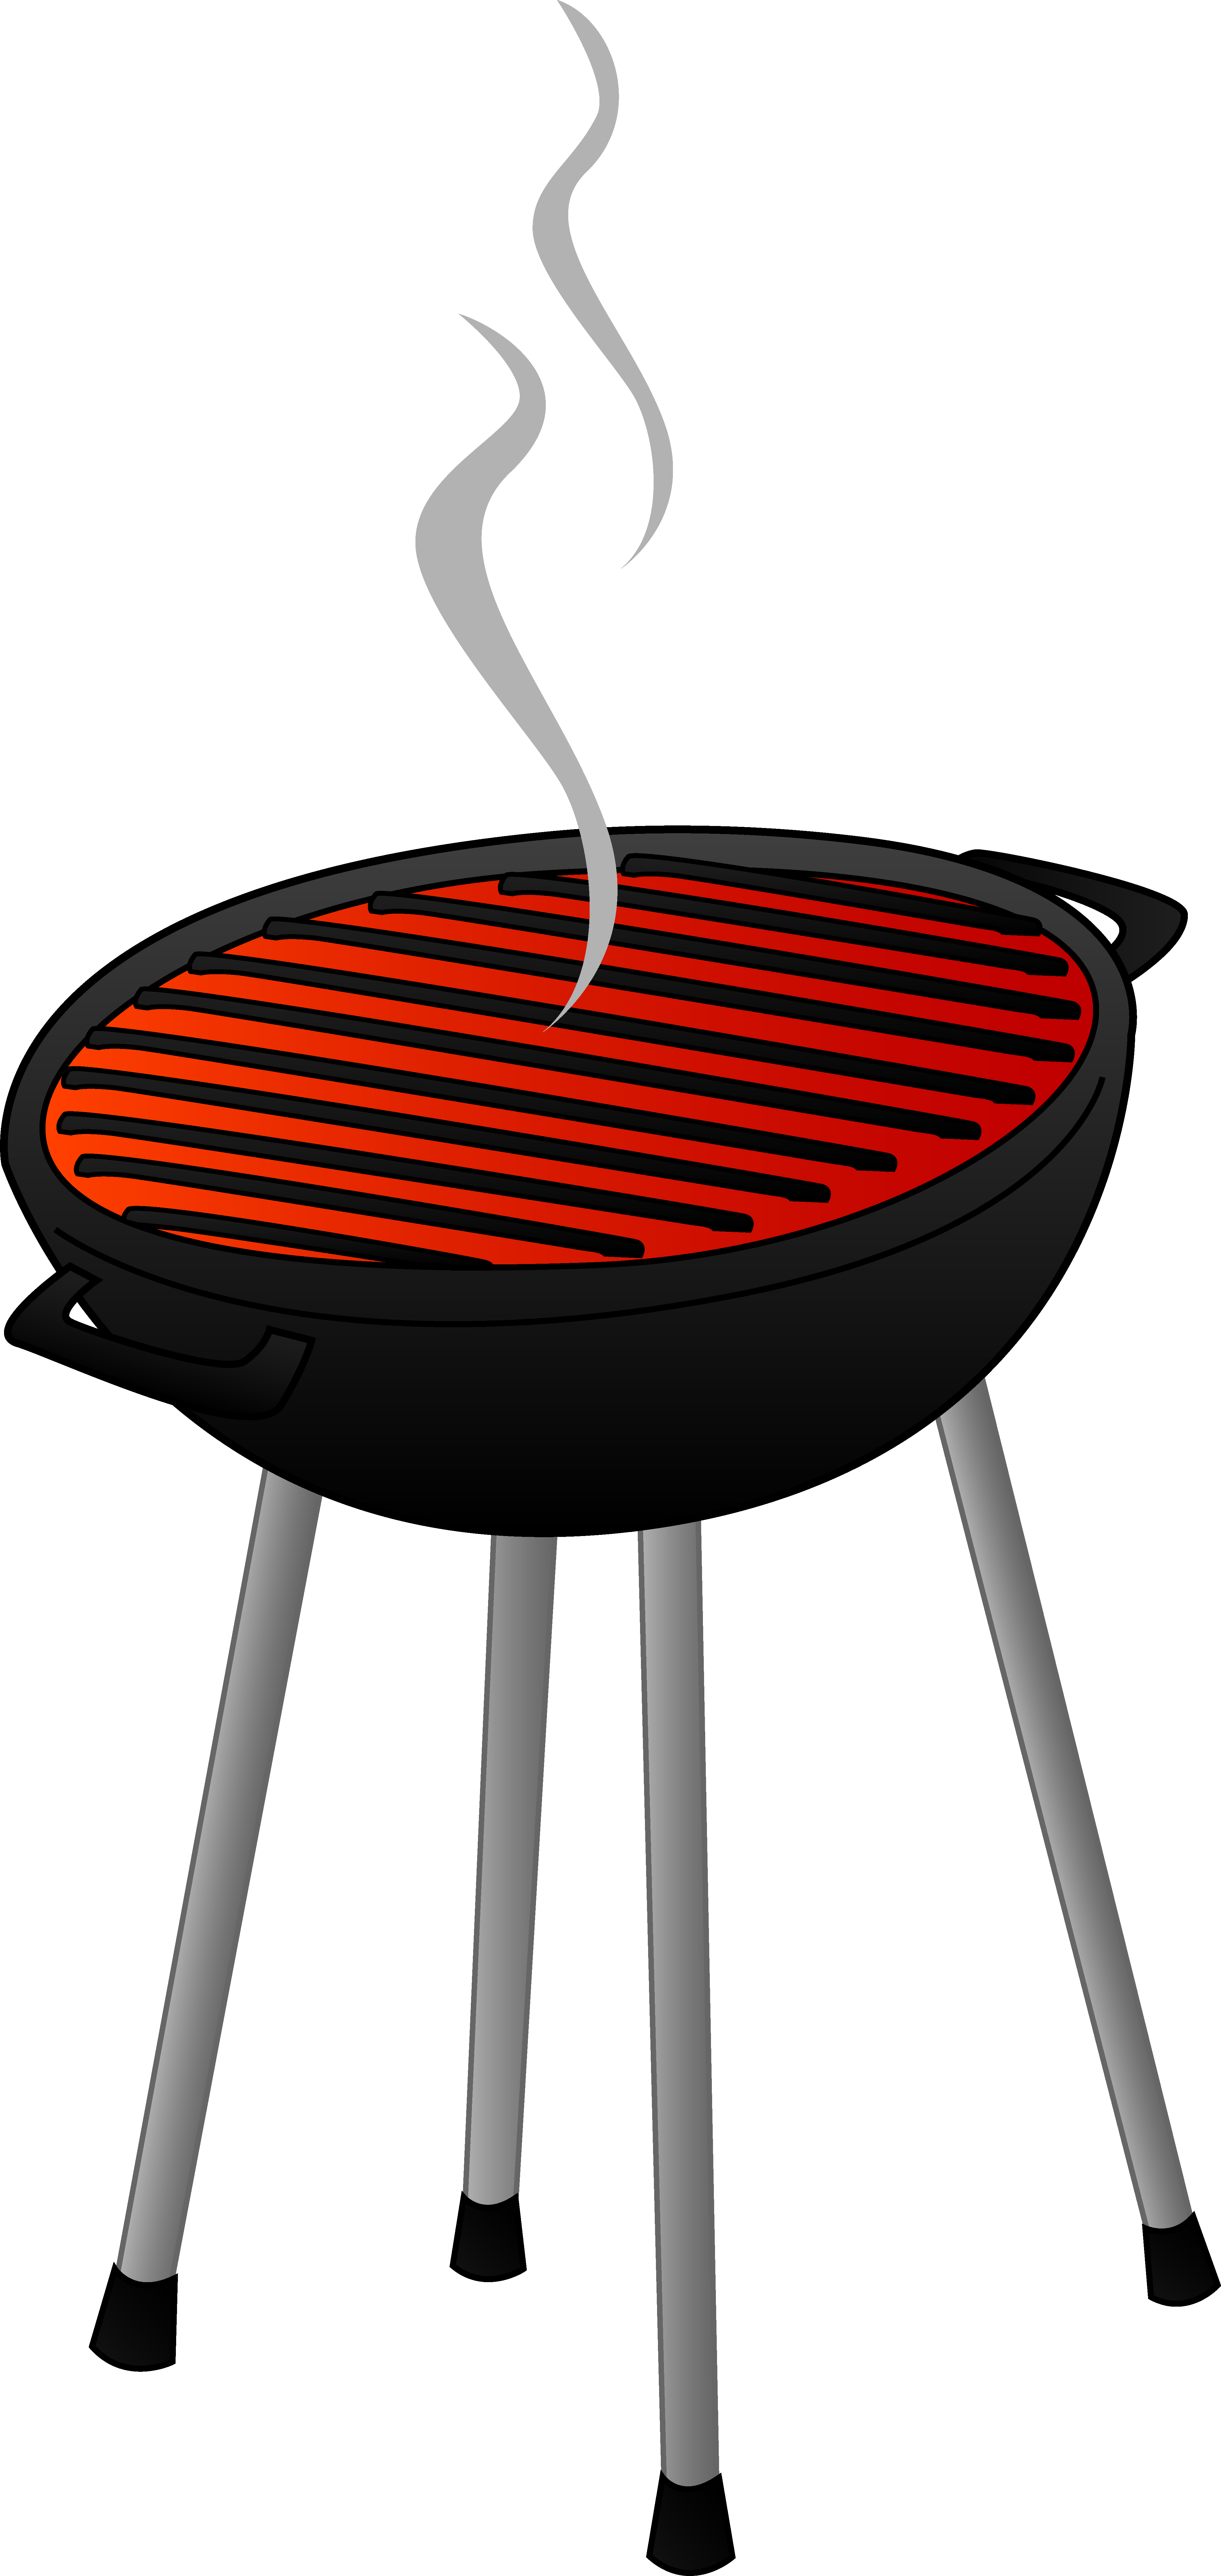 Free Images Barbecue, Download Free Clip Art, Free Clip Art.